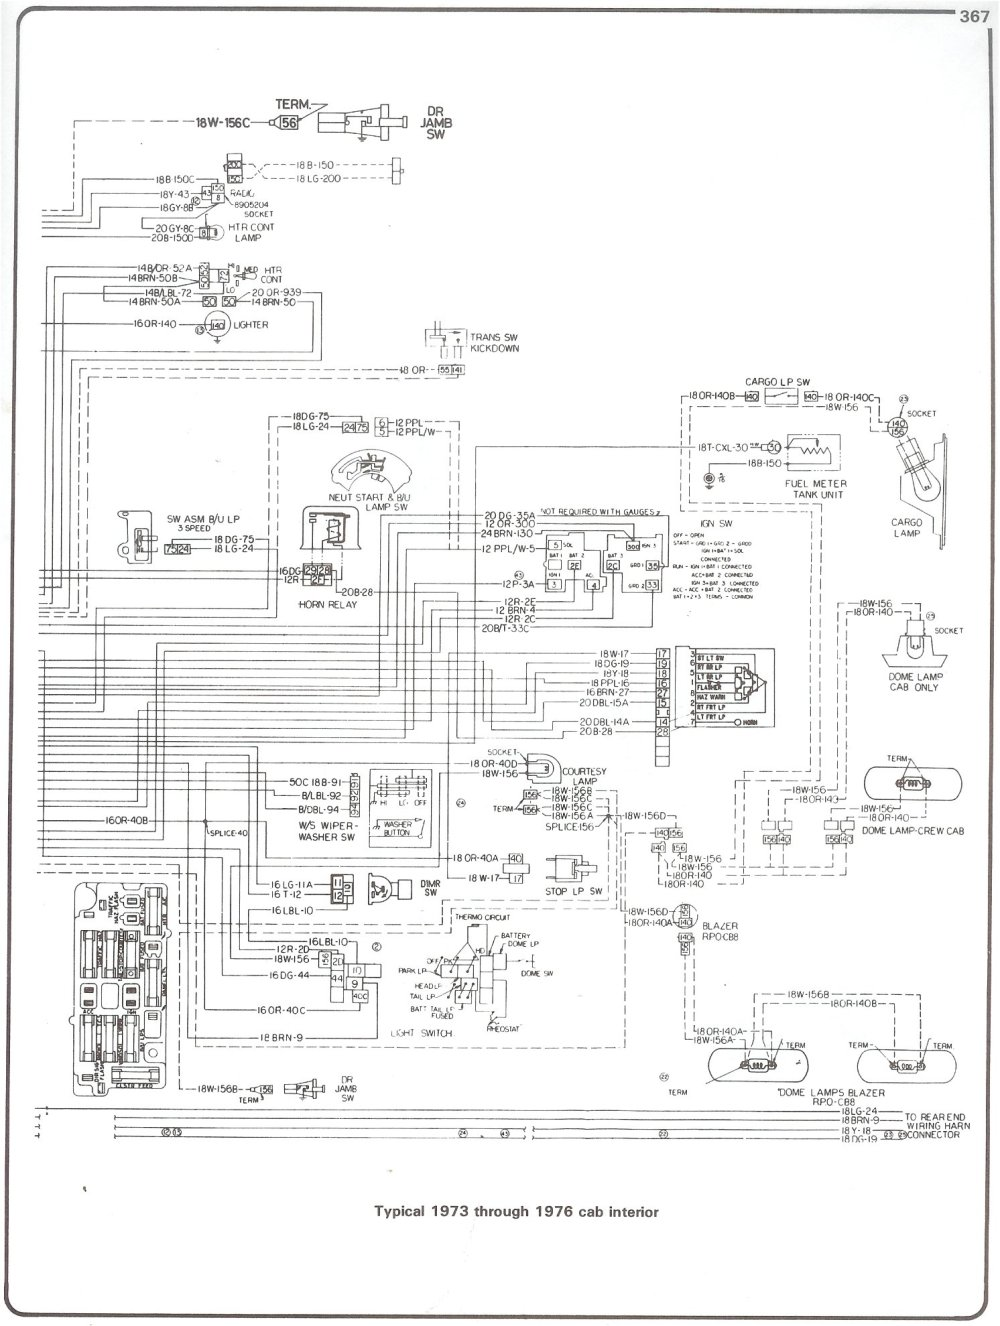 medium resolution of complete 73 87 wiring diagrams 84 chevy truck wiring diagram chevrolet wiring diagram 2008 dashboard